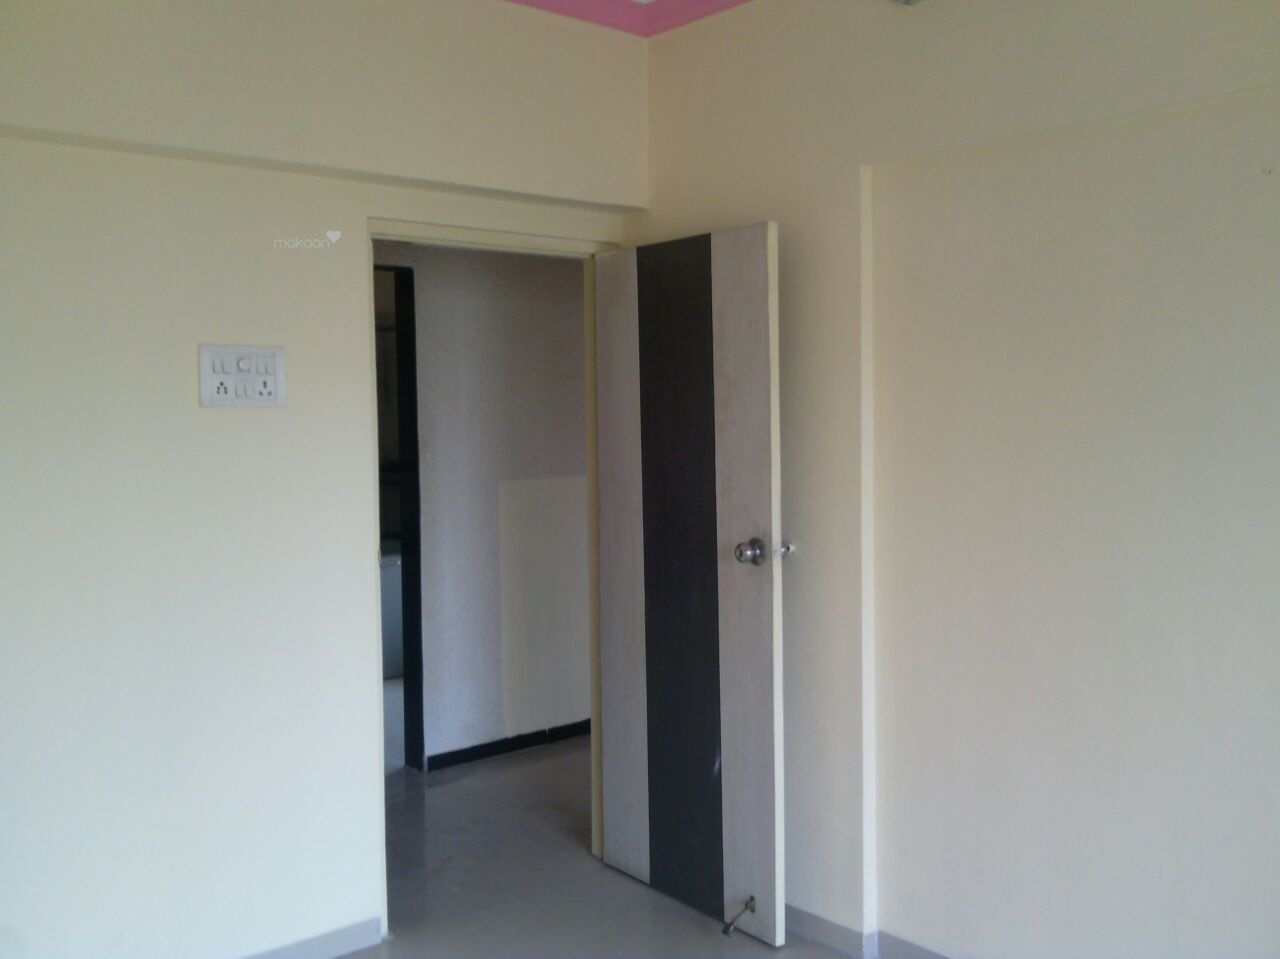 1440 sq ft 3BHK 3BHK+3T (1,440 sq ft) Property By Bhoomi Enterprises In Project, Kharghar